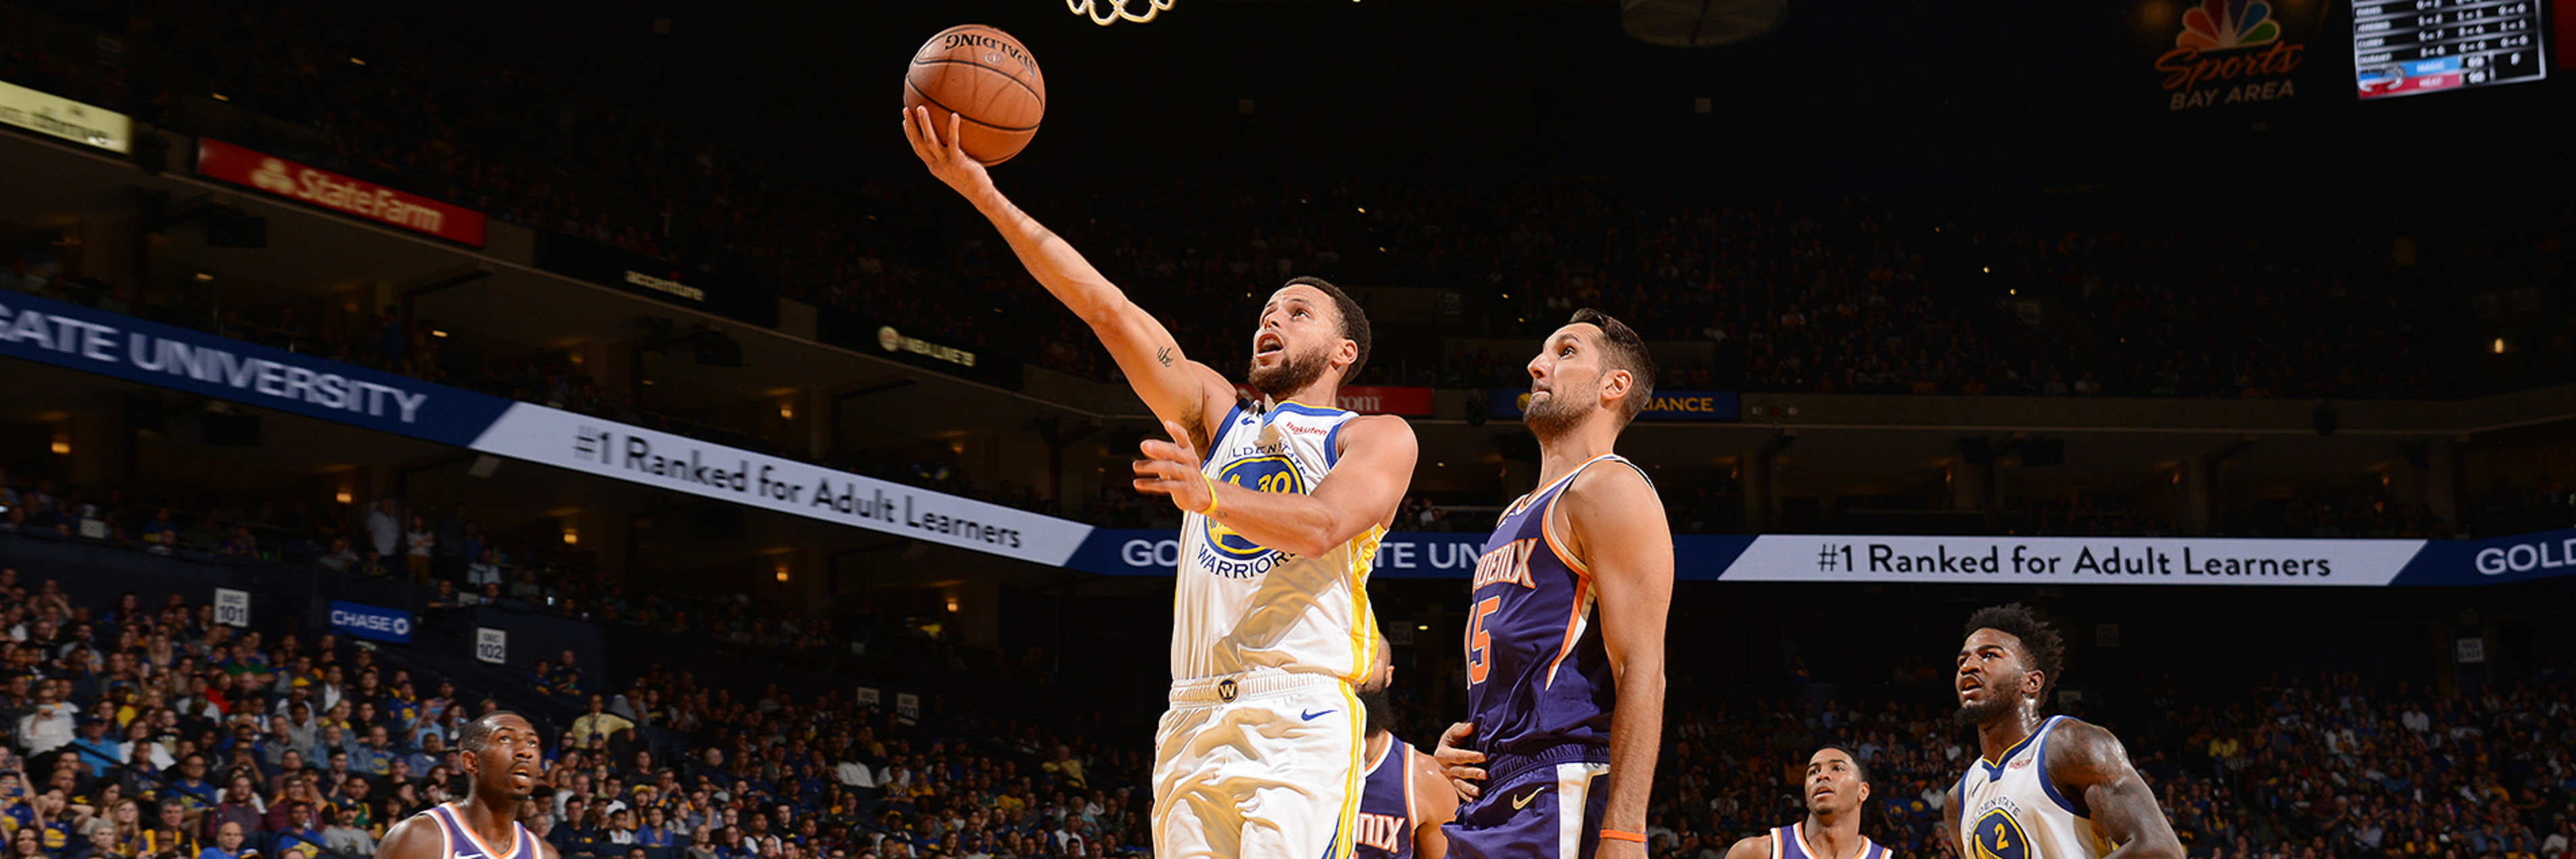 Curry Scores 23 in Preseason Loss to Suns